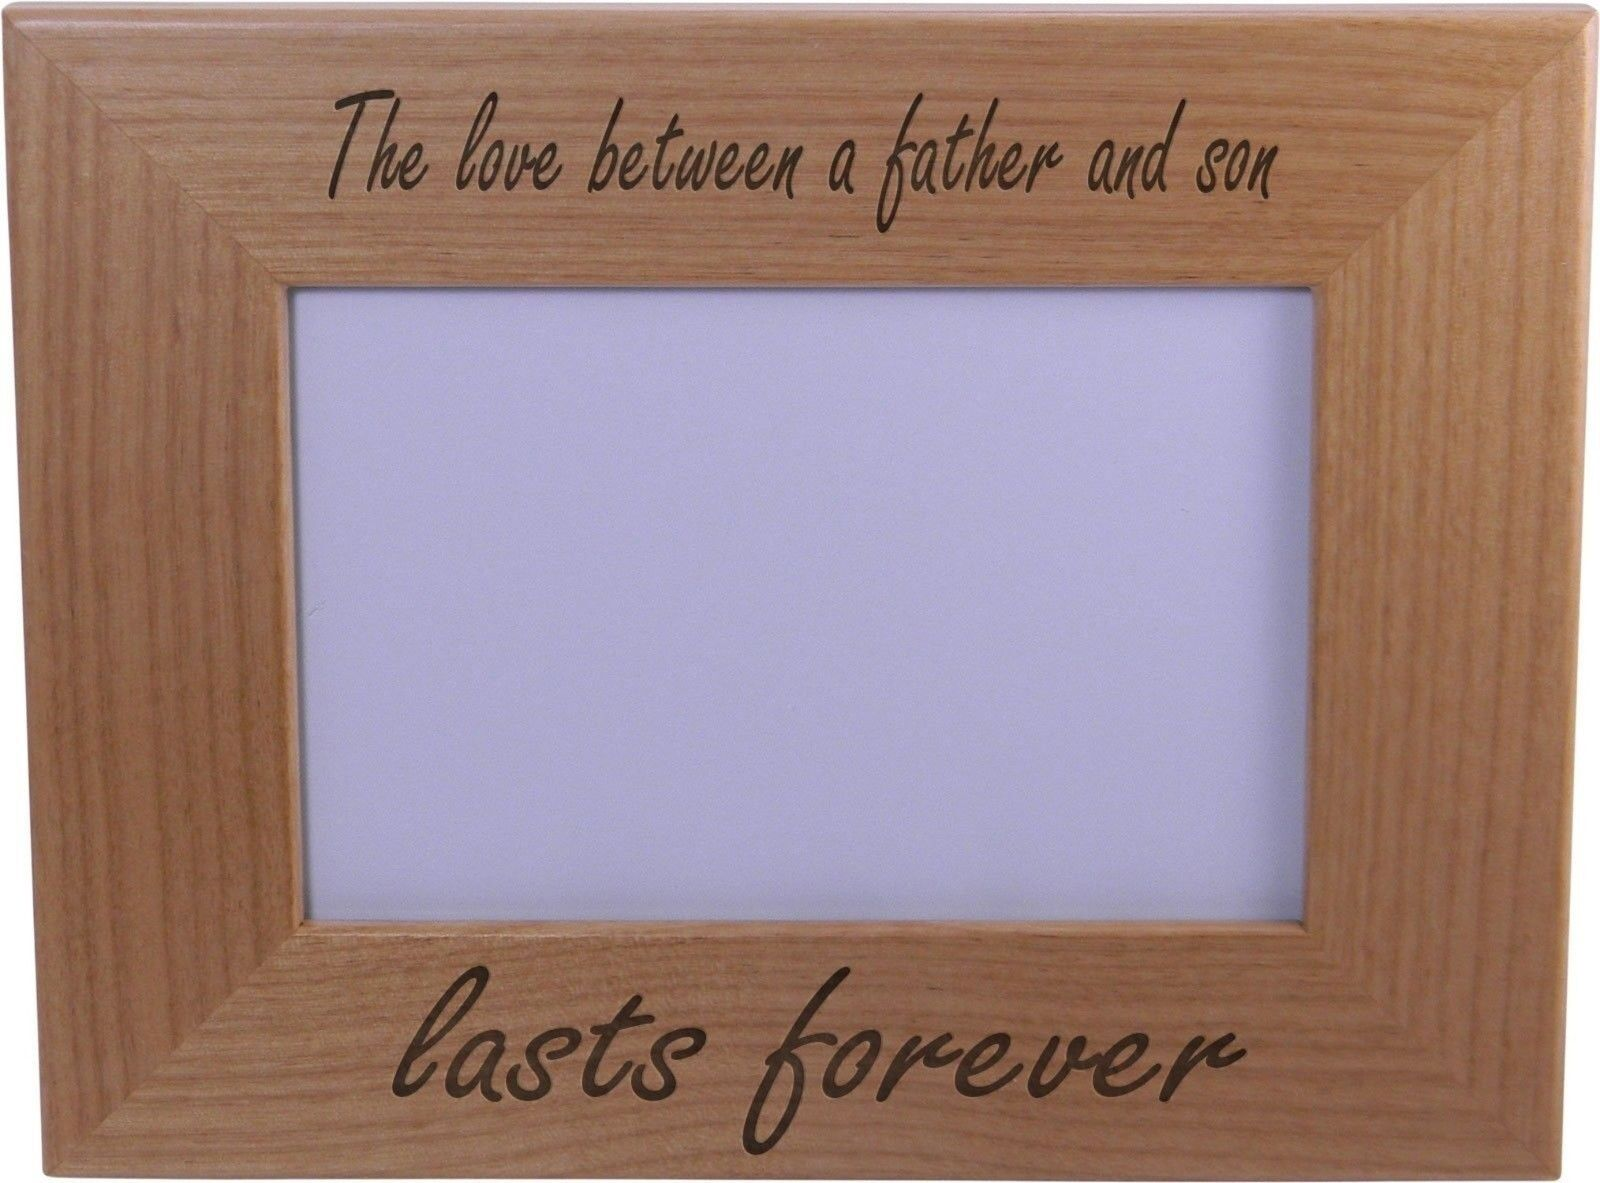 The Love Between a Father and Son Lasts Forever 4x6 Inch Wood ...